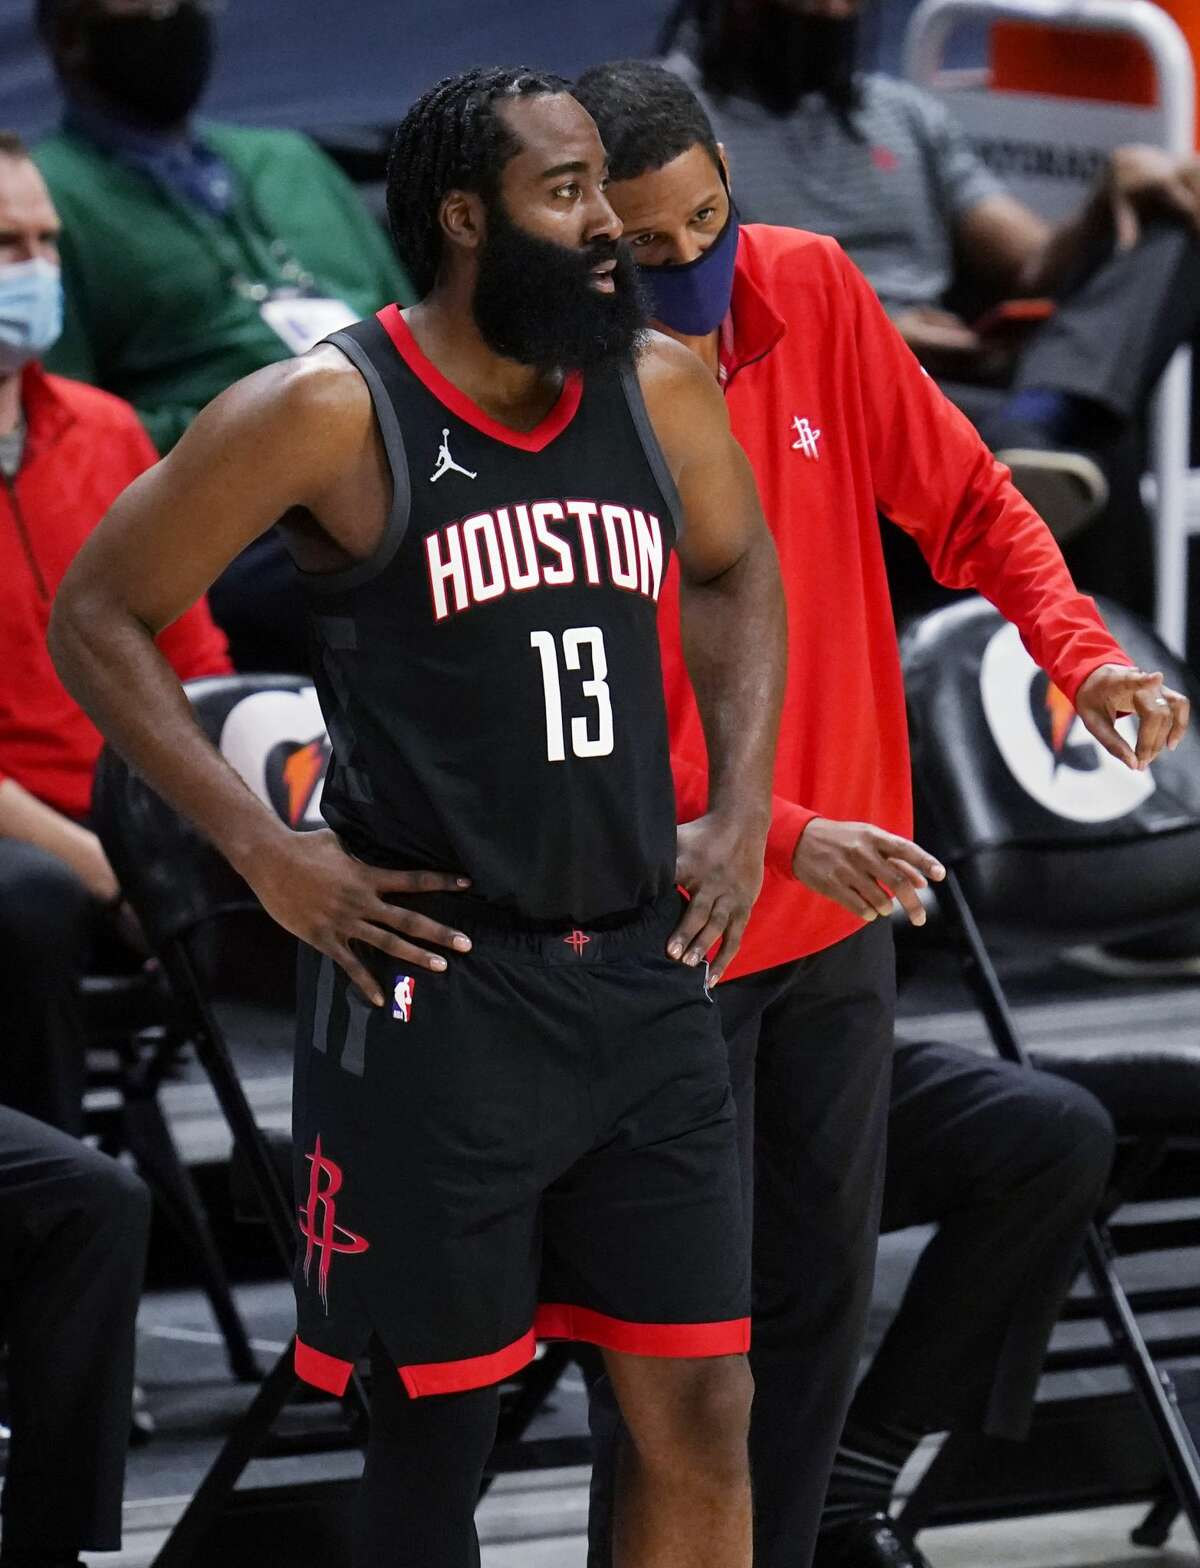 Houston Rockets guard James Harden confers with coach Stephen Silas during the second half of the team's NBA basketball game against the Denver Nuggets on Monday, Dec. 28, 2020, in Denver. (AP Photo/David Zalubowski)